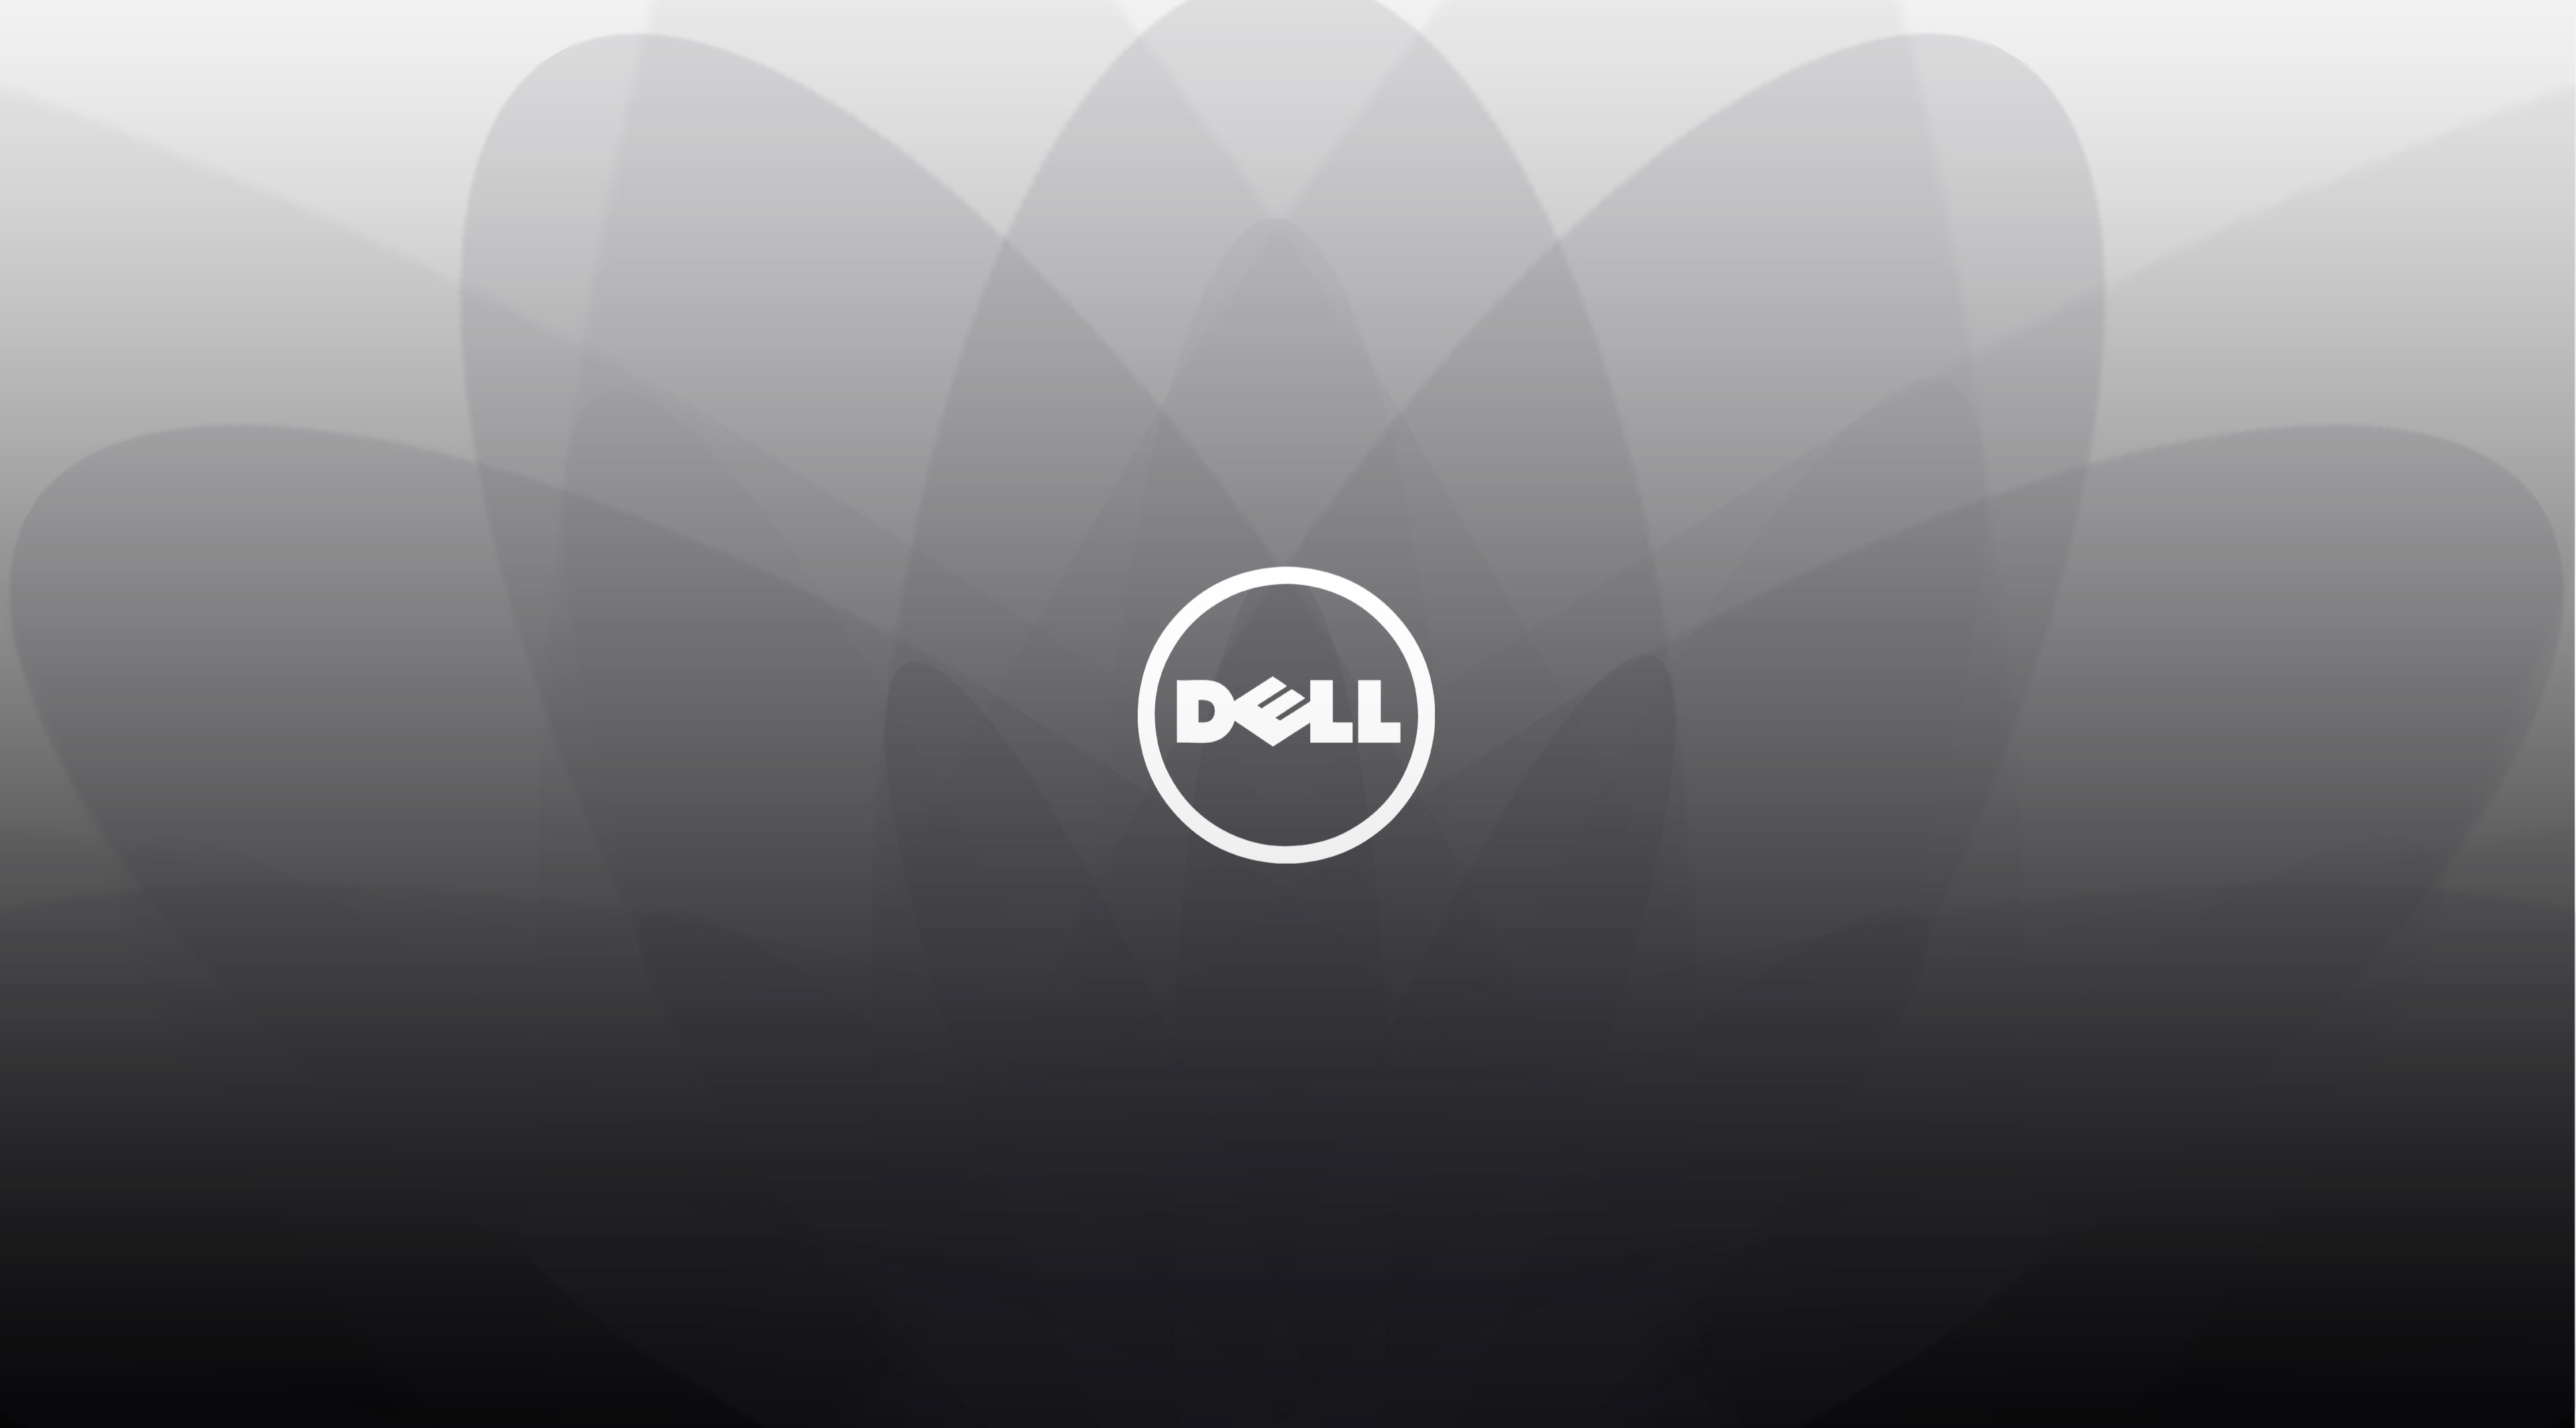 wallpapers for dell laptop